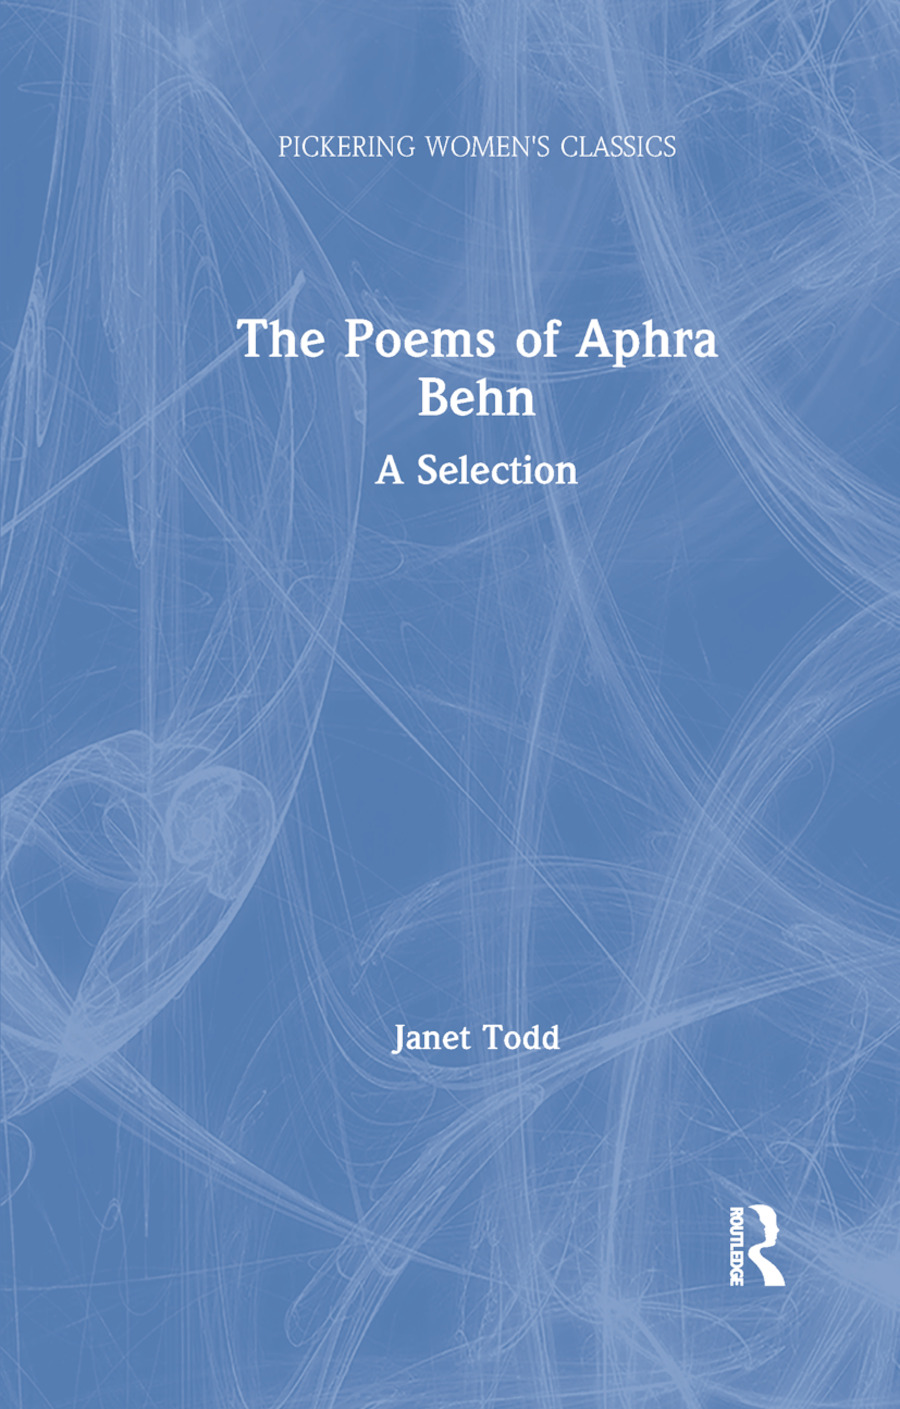 The Poems of Aphra Behn: A Selection book cover